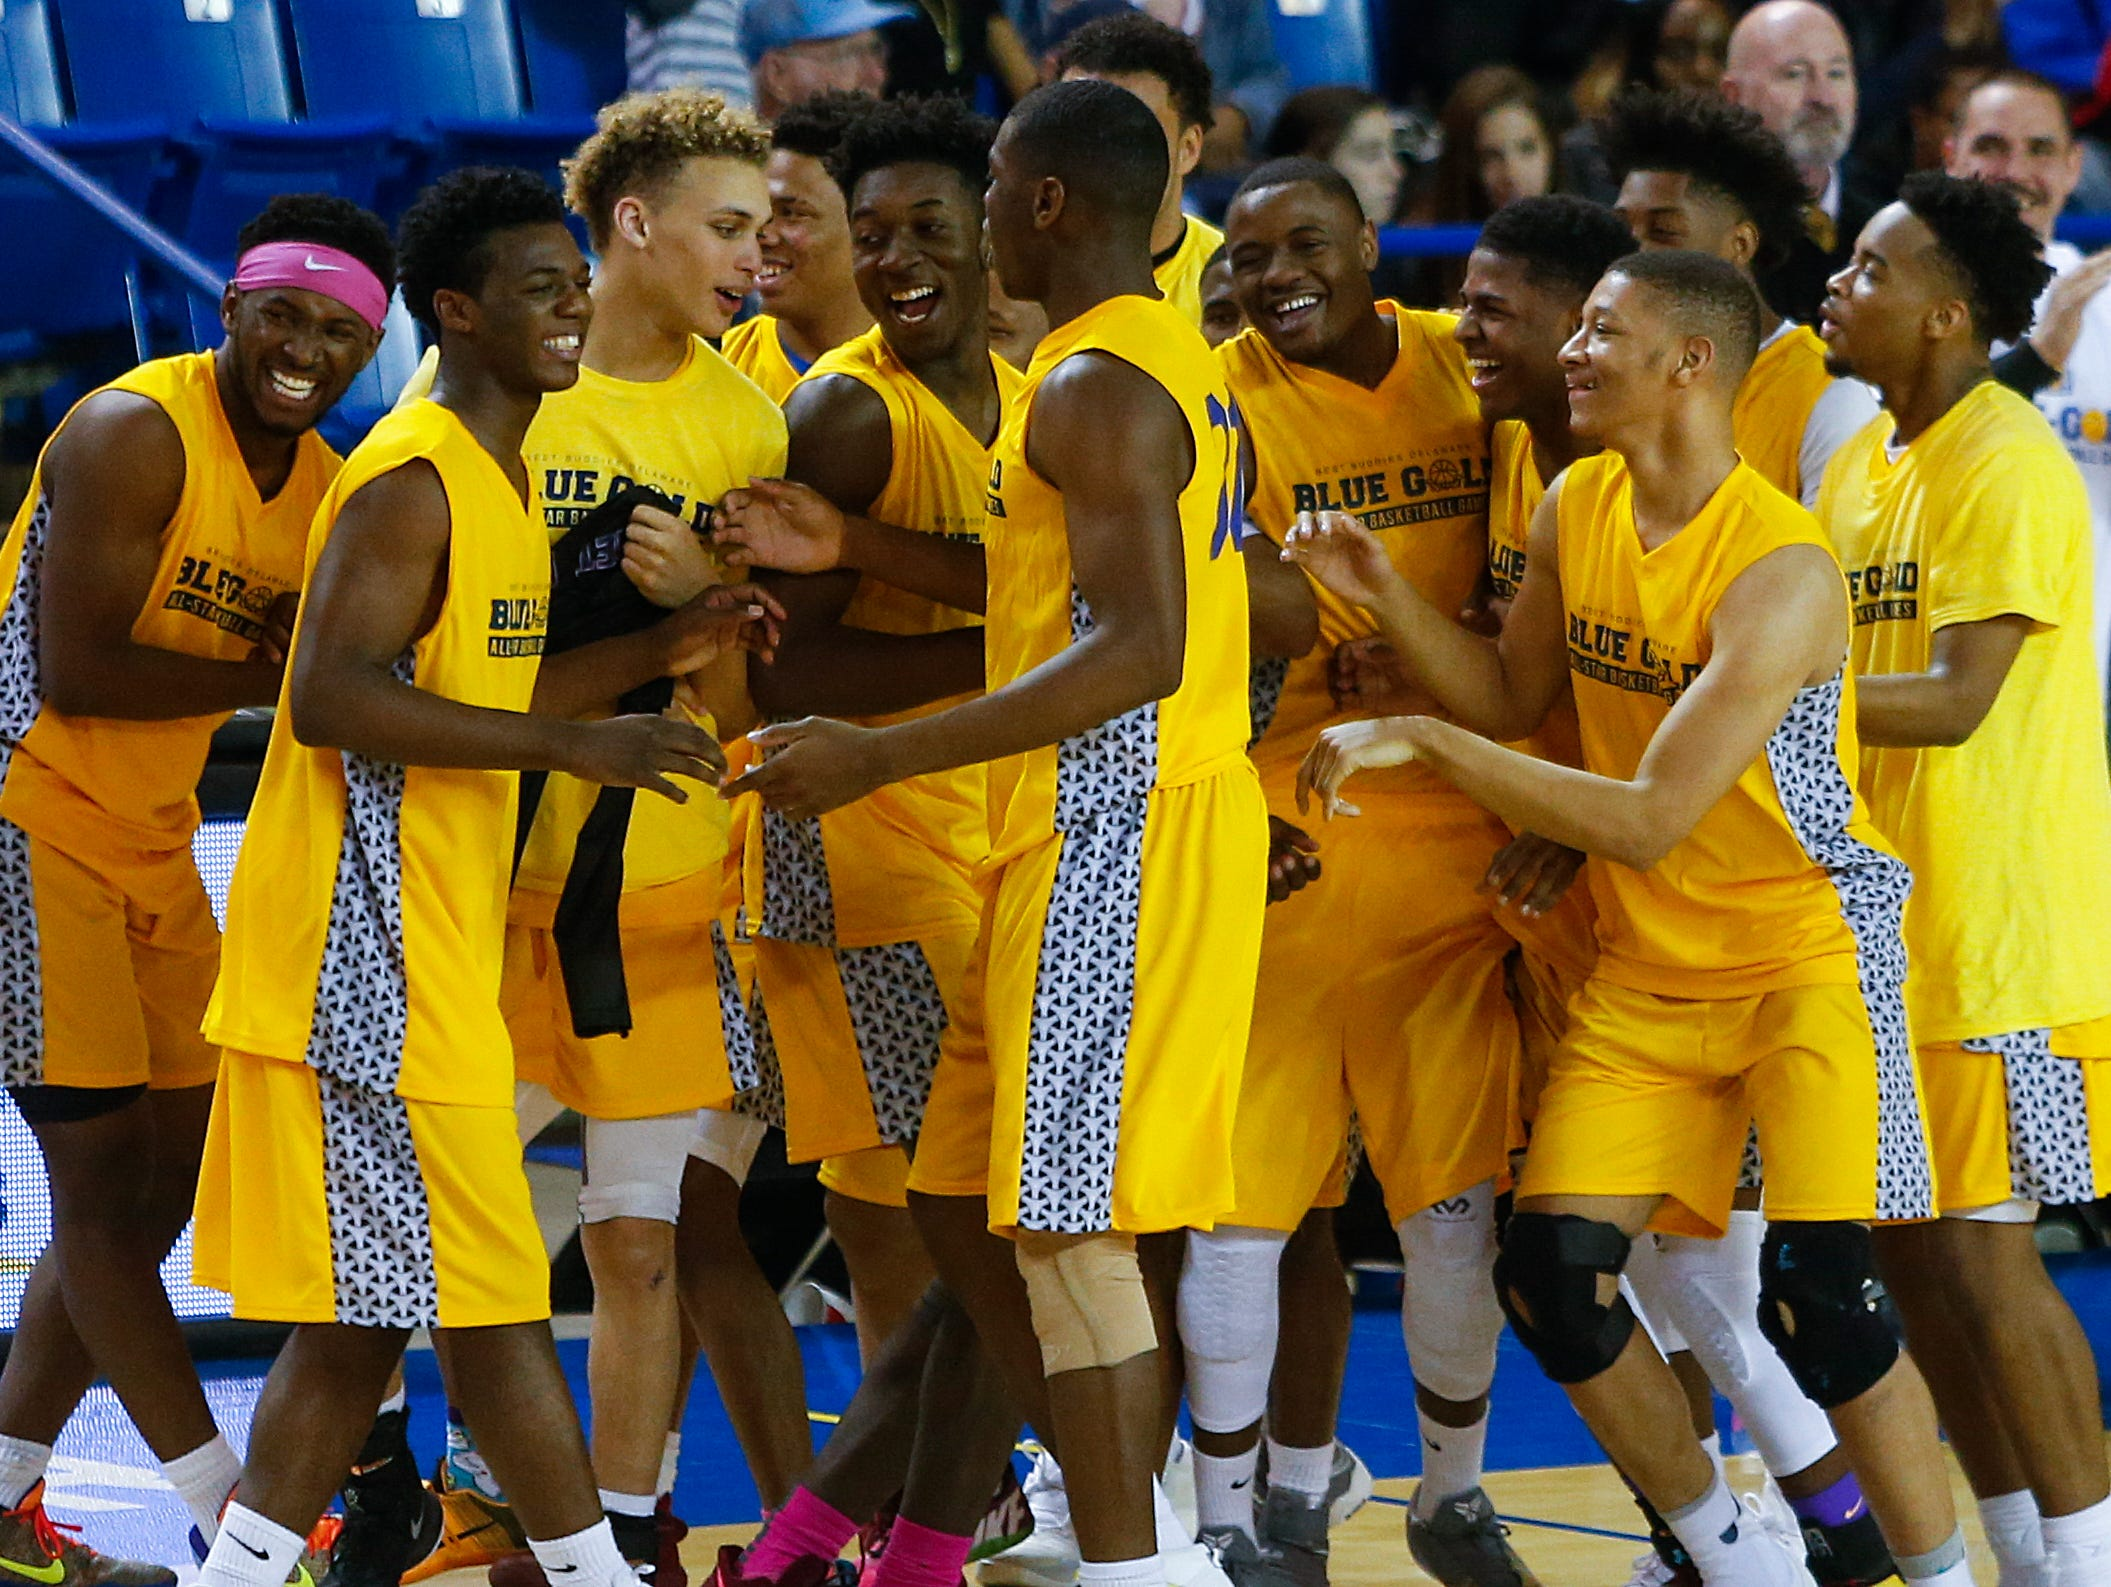 Gold celebrates its win, 92-91, in the Blue-Gold All-Star Basketball game at the Bob Carpenter Center Saturday.